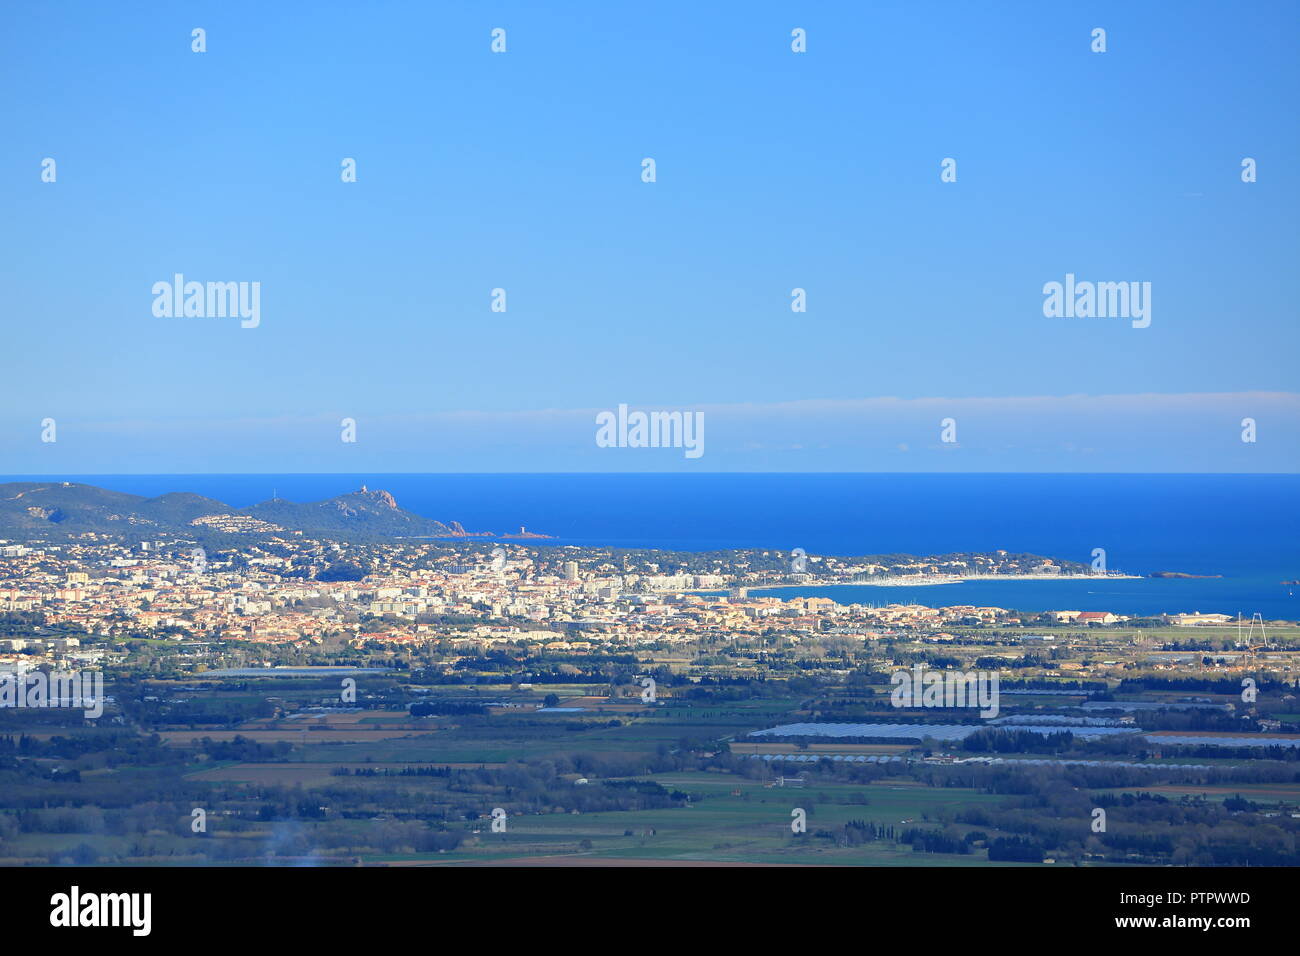 Top view above Saint Raphael, Var, 83, PACA, France Stock Photo